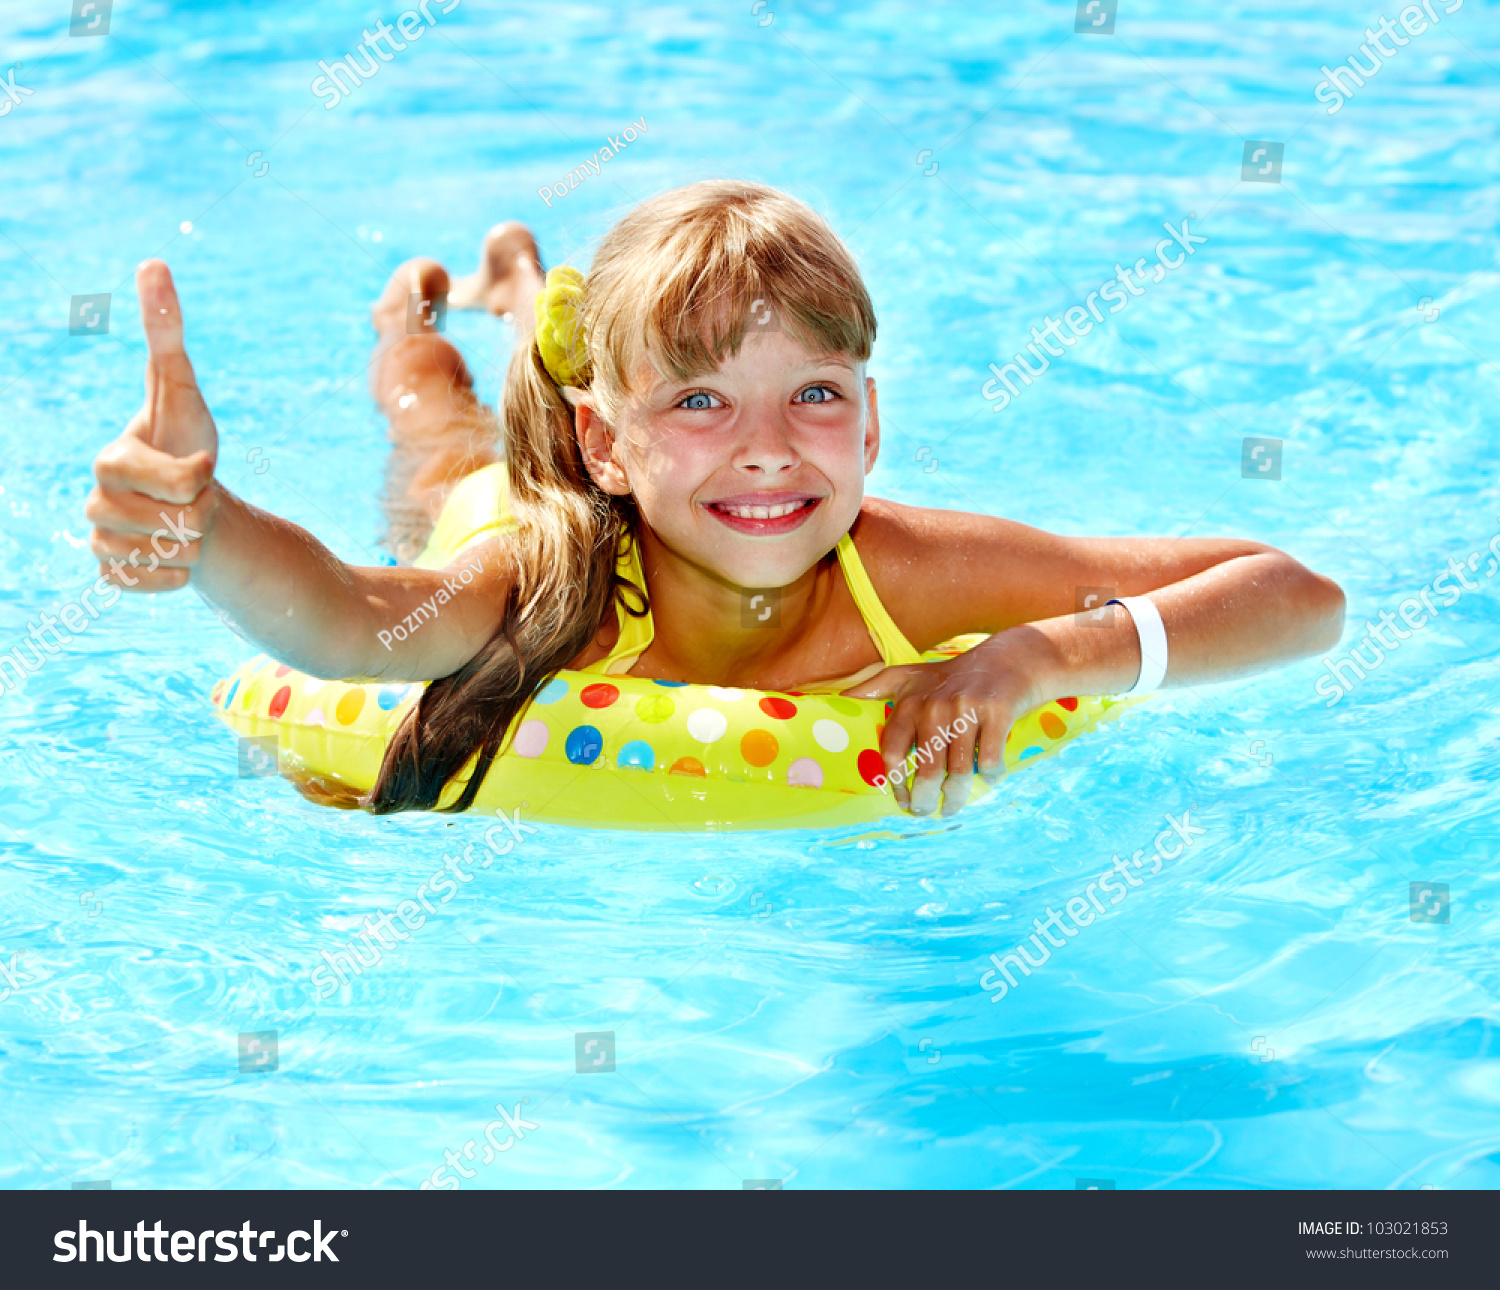 Children Sitting On Inflatable Ring In Swimming Pool Stock Photo 103021853 Shutterstock